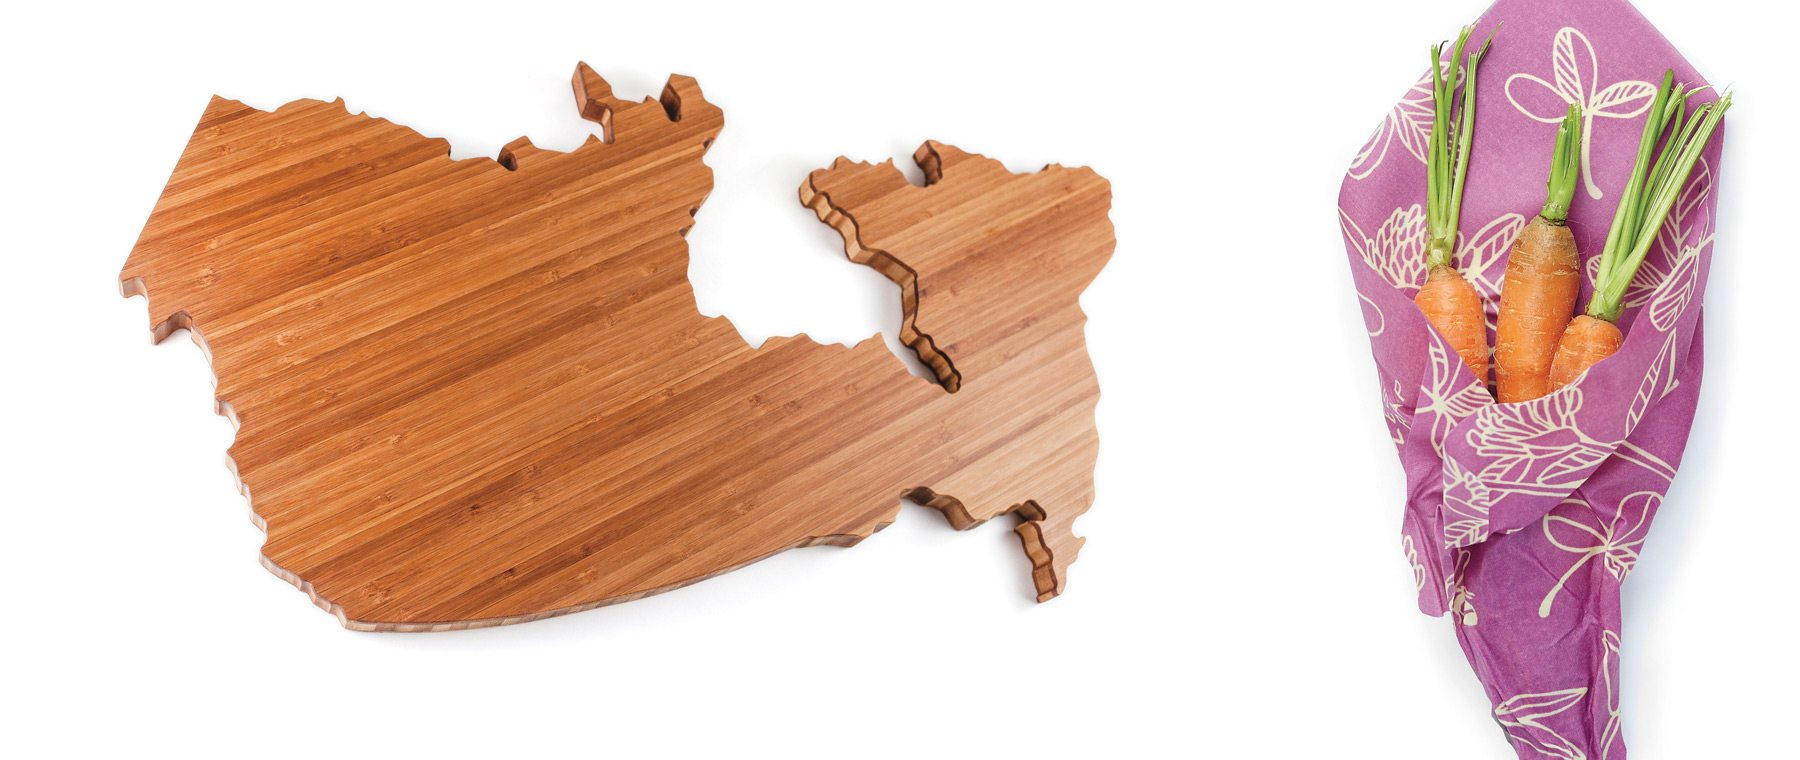 (Left) Show your national pride with this bamboo cheese board — made in Canada by Love My Local. $106. Boogie and Birdie. Sustainable food storage from Bee's Wrap uses the heat of your hands to create a seal. It's durable, washable, and reusable. $30. C.A. Paradis